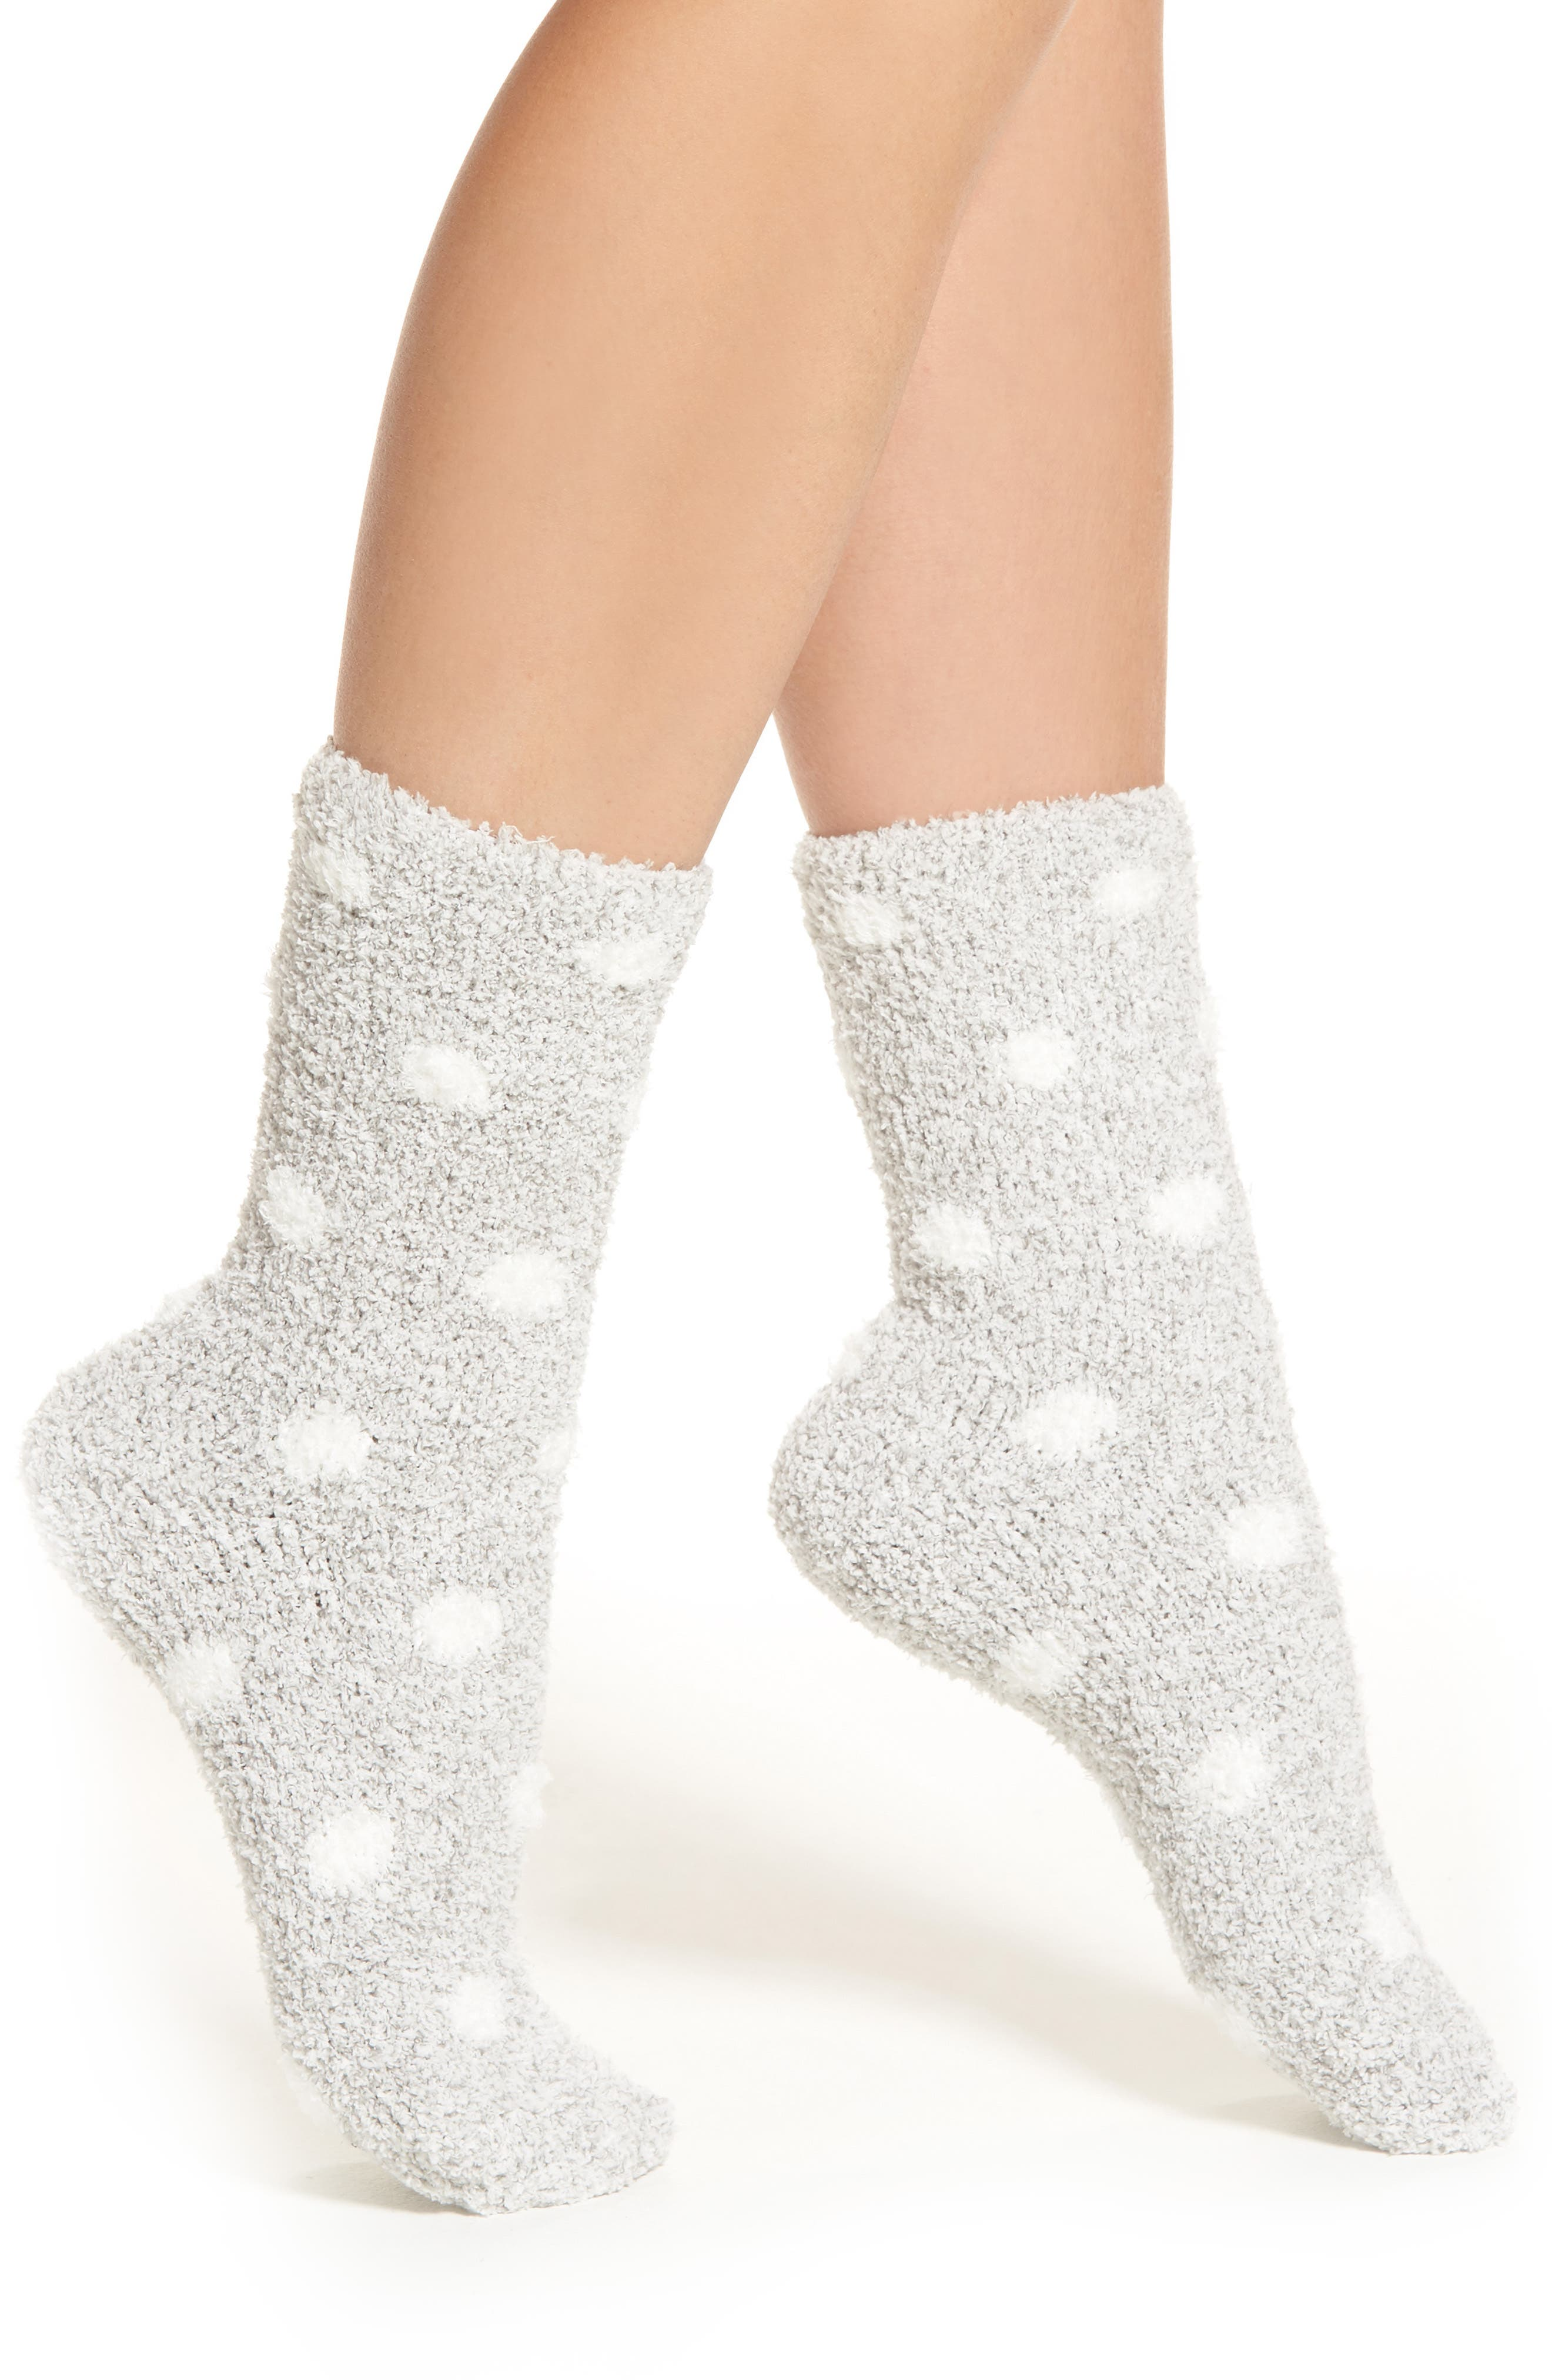 Butter Crew Socks,                             Main thumbnail 1, color,                             Grey With White Dot